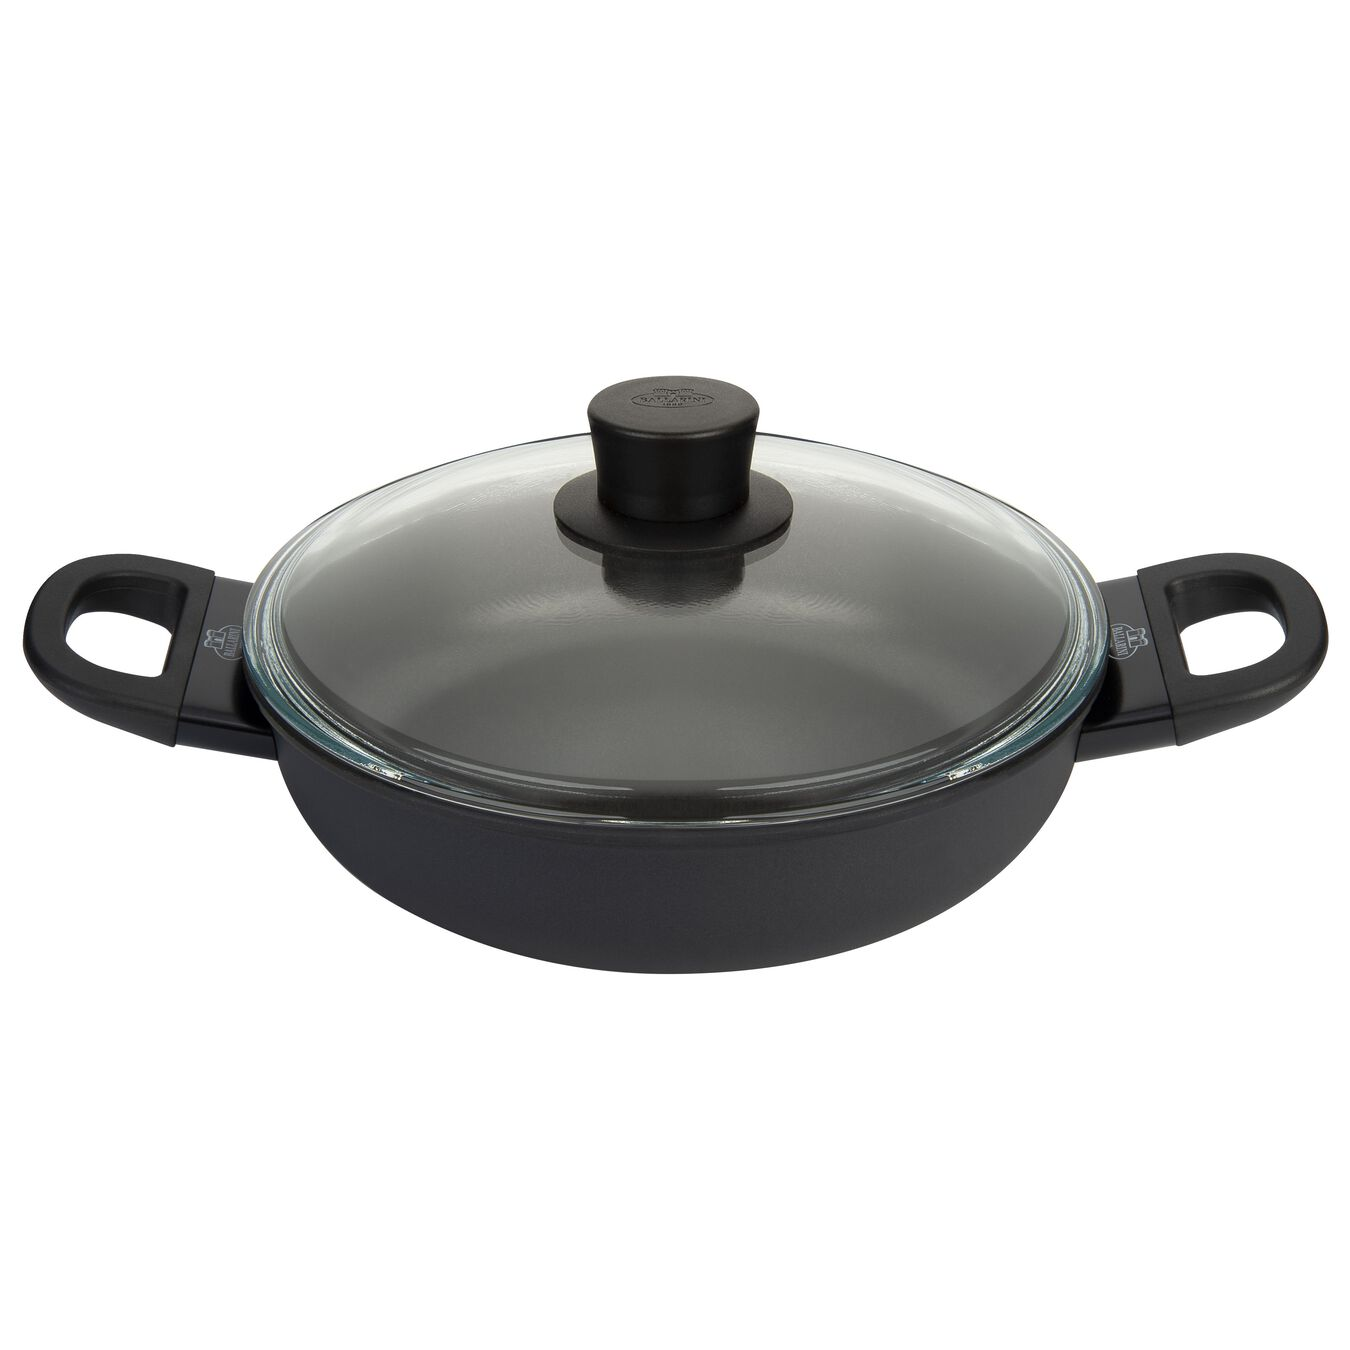 round Saucier and sauteuse with glass lid, black,,large 1